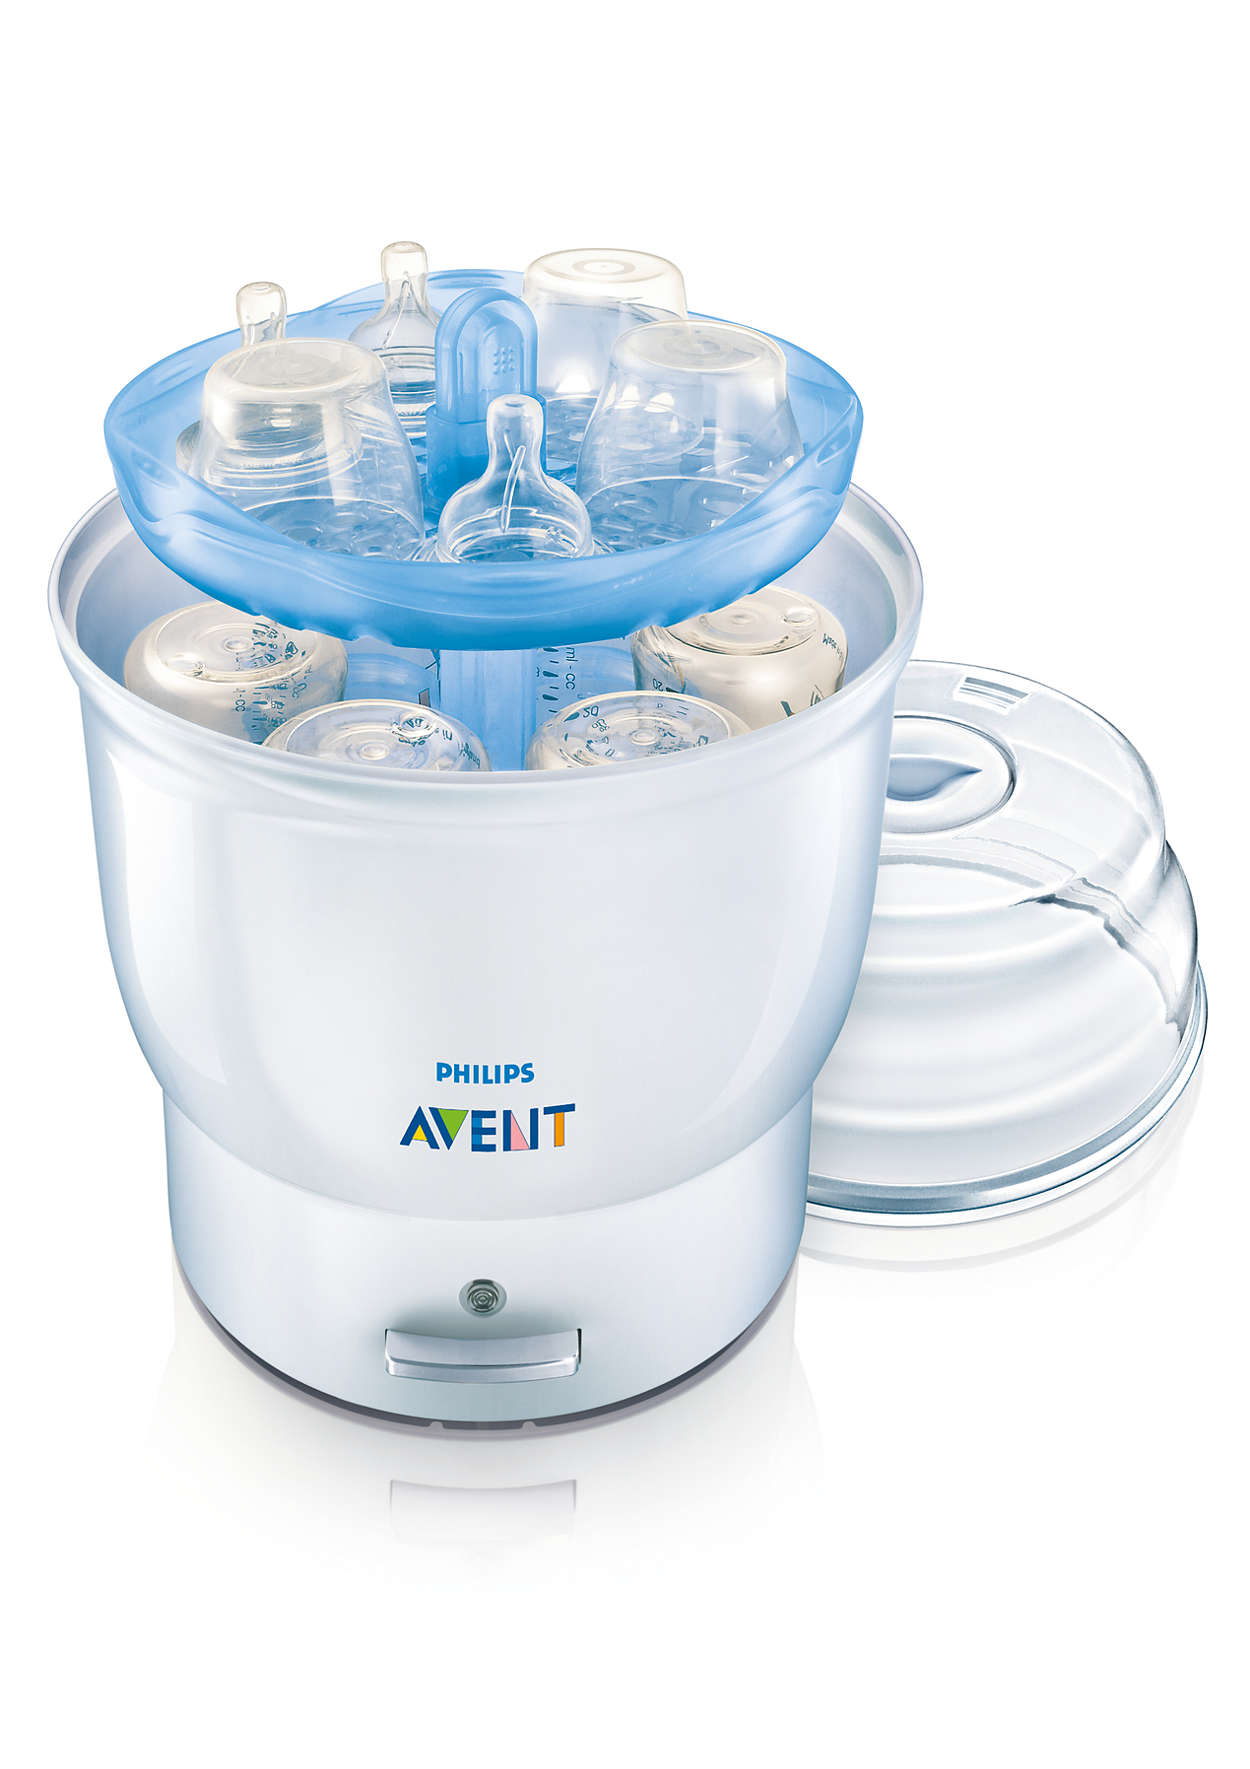 avent bottle warmer instructions